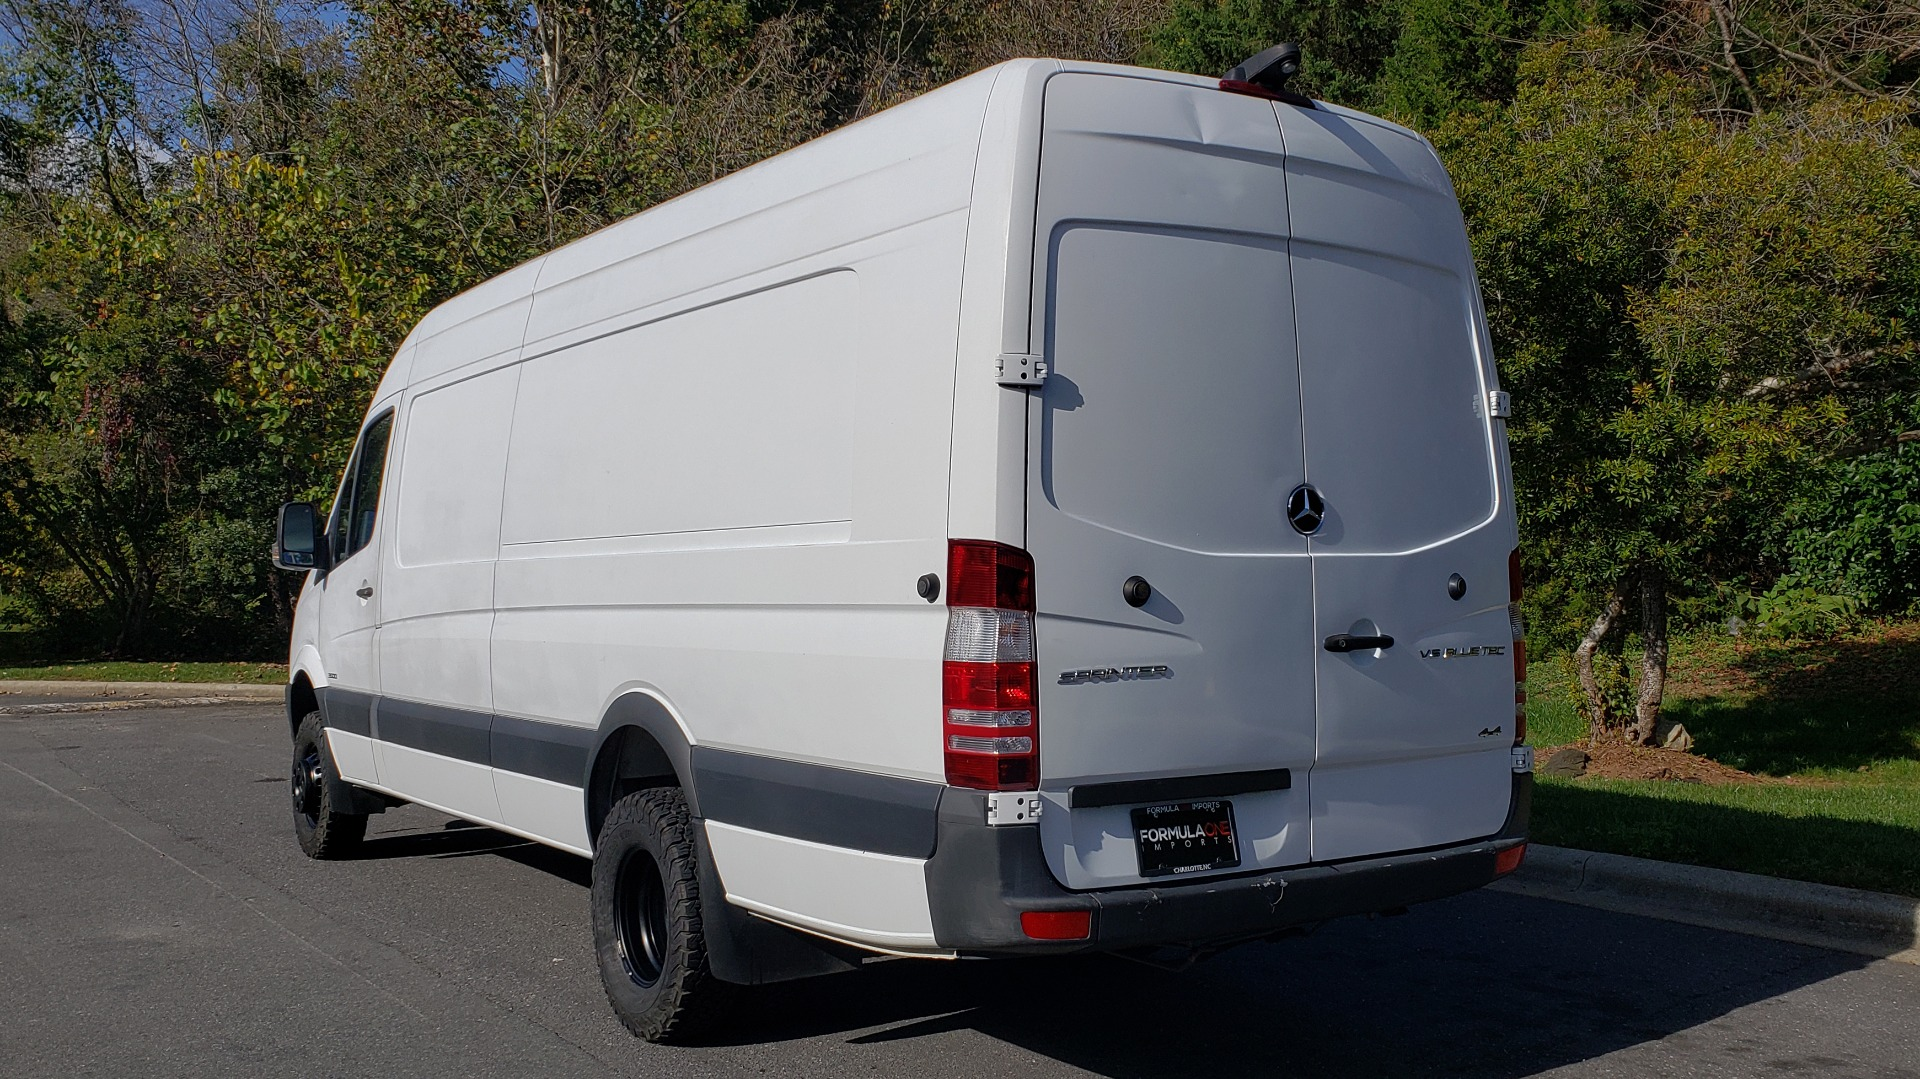 Used 2015 Mercedes-Benz SPRINTER CARGO VAN 4x4 3500 170 EXT / 3.0L V6 TURBO DIESEL / 5-SPD AUTO / REARVIEW for sale $51,999 at Formula Imports in Charlotte NC 28227 3